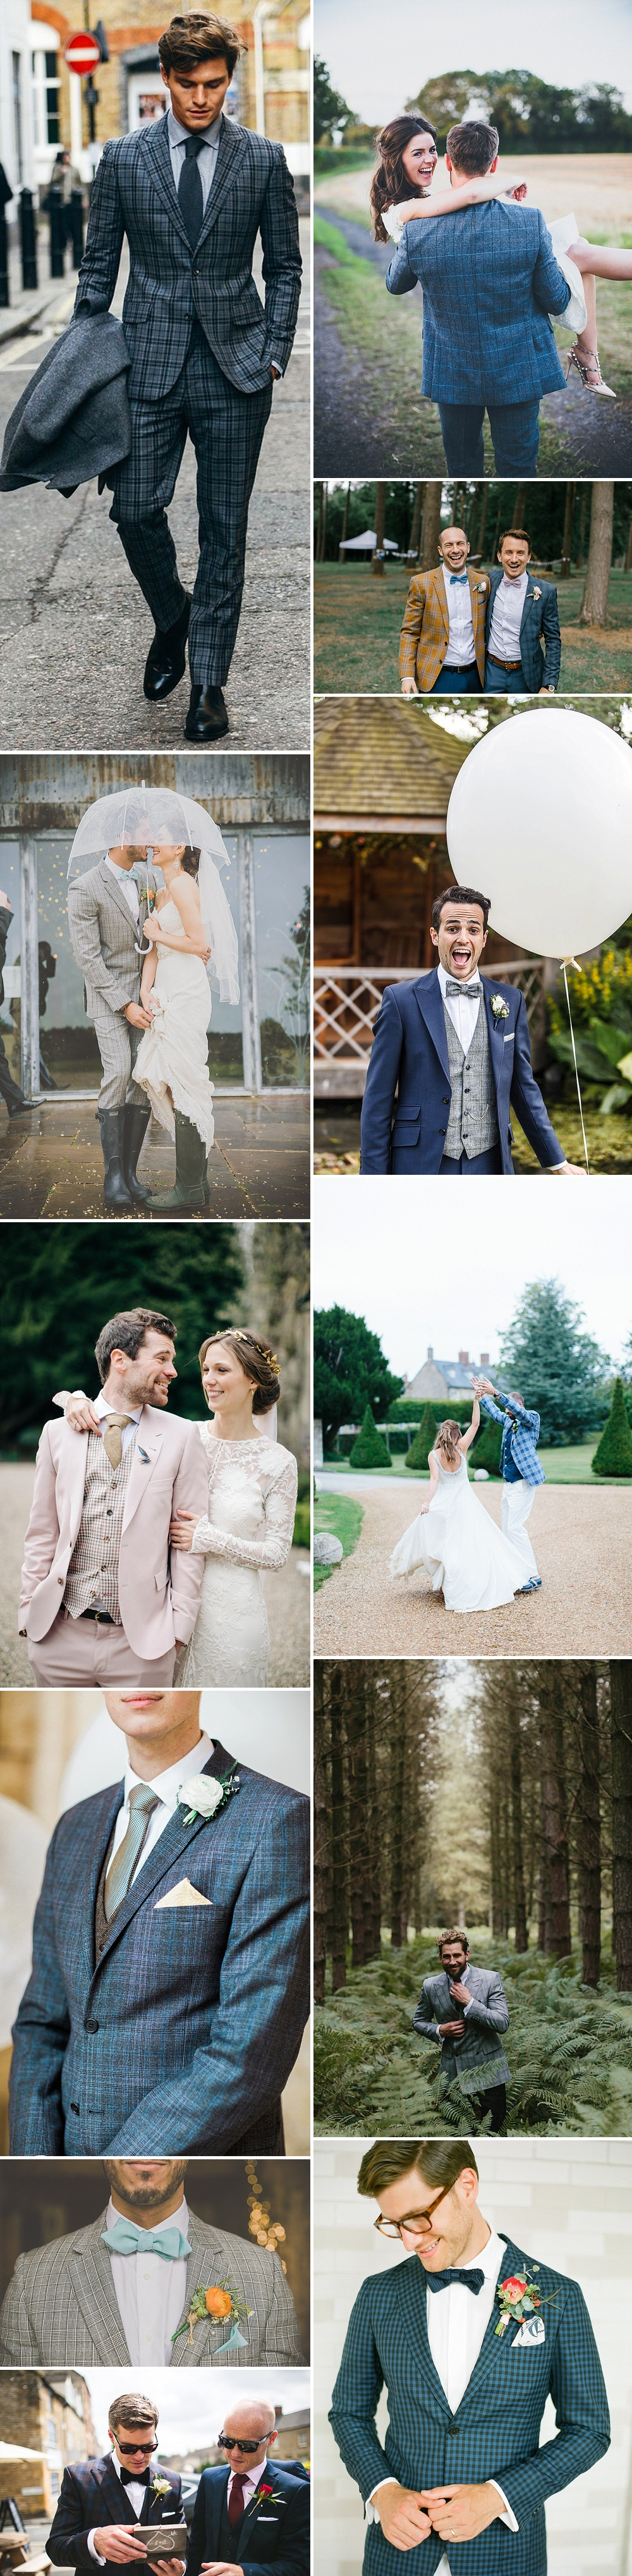 Groom Wearing Checked Suit For Wedding   Groom Fashion Inspiration